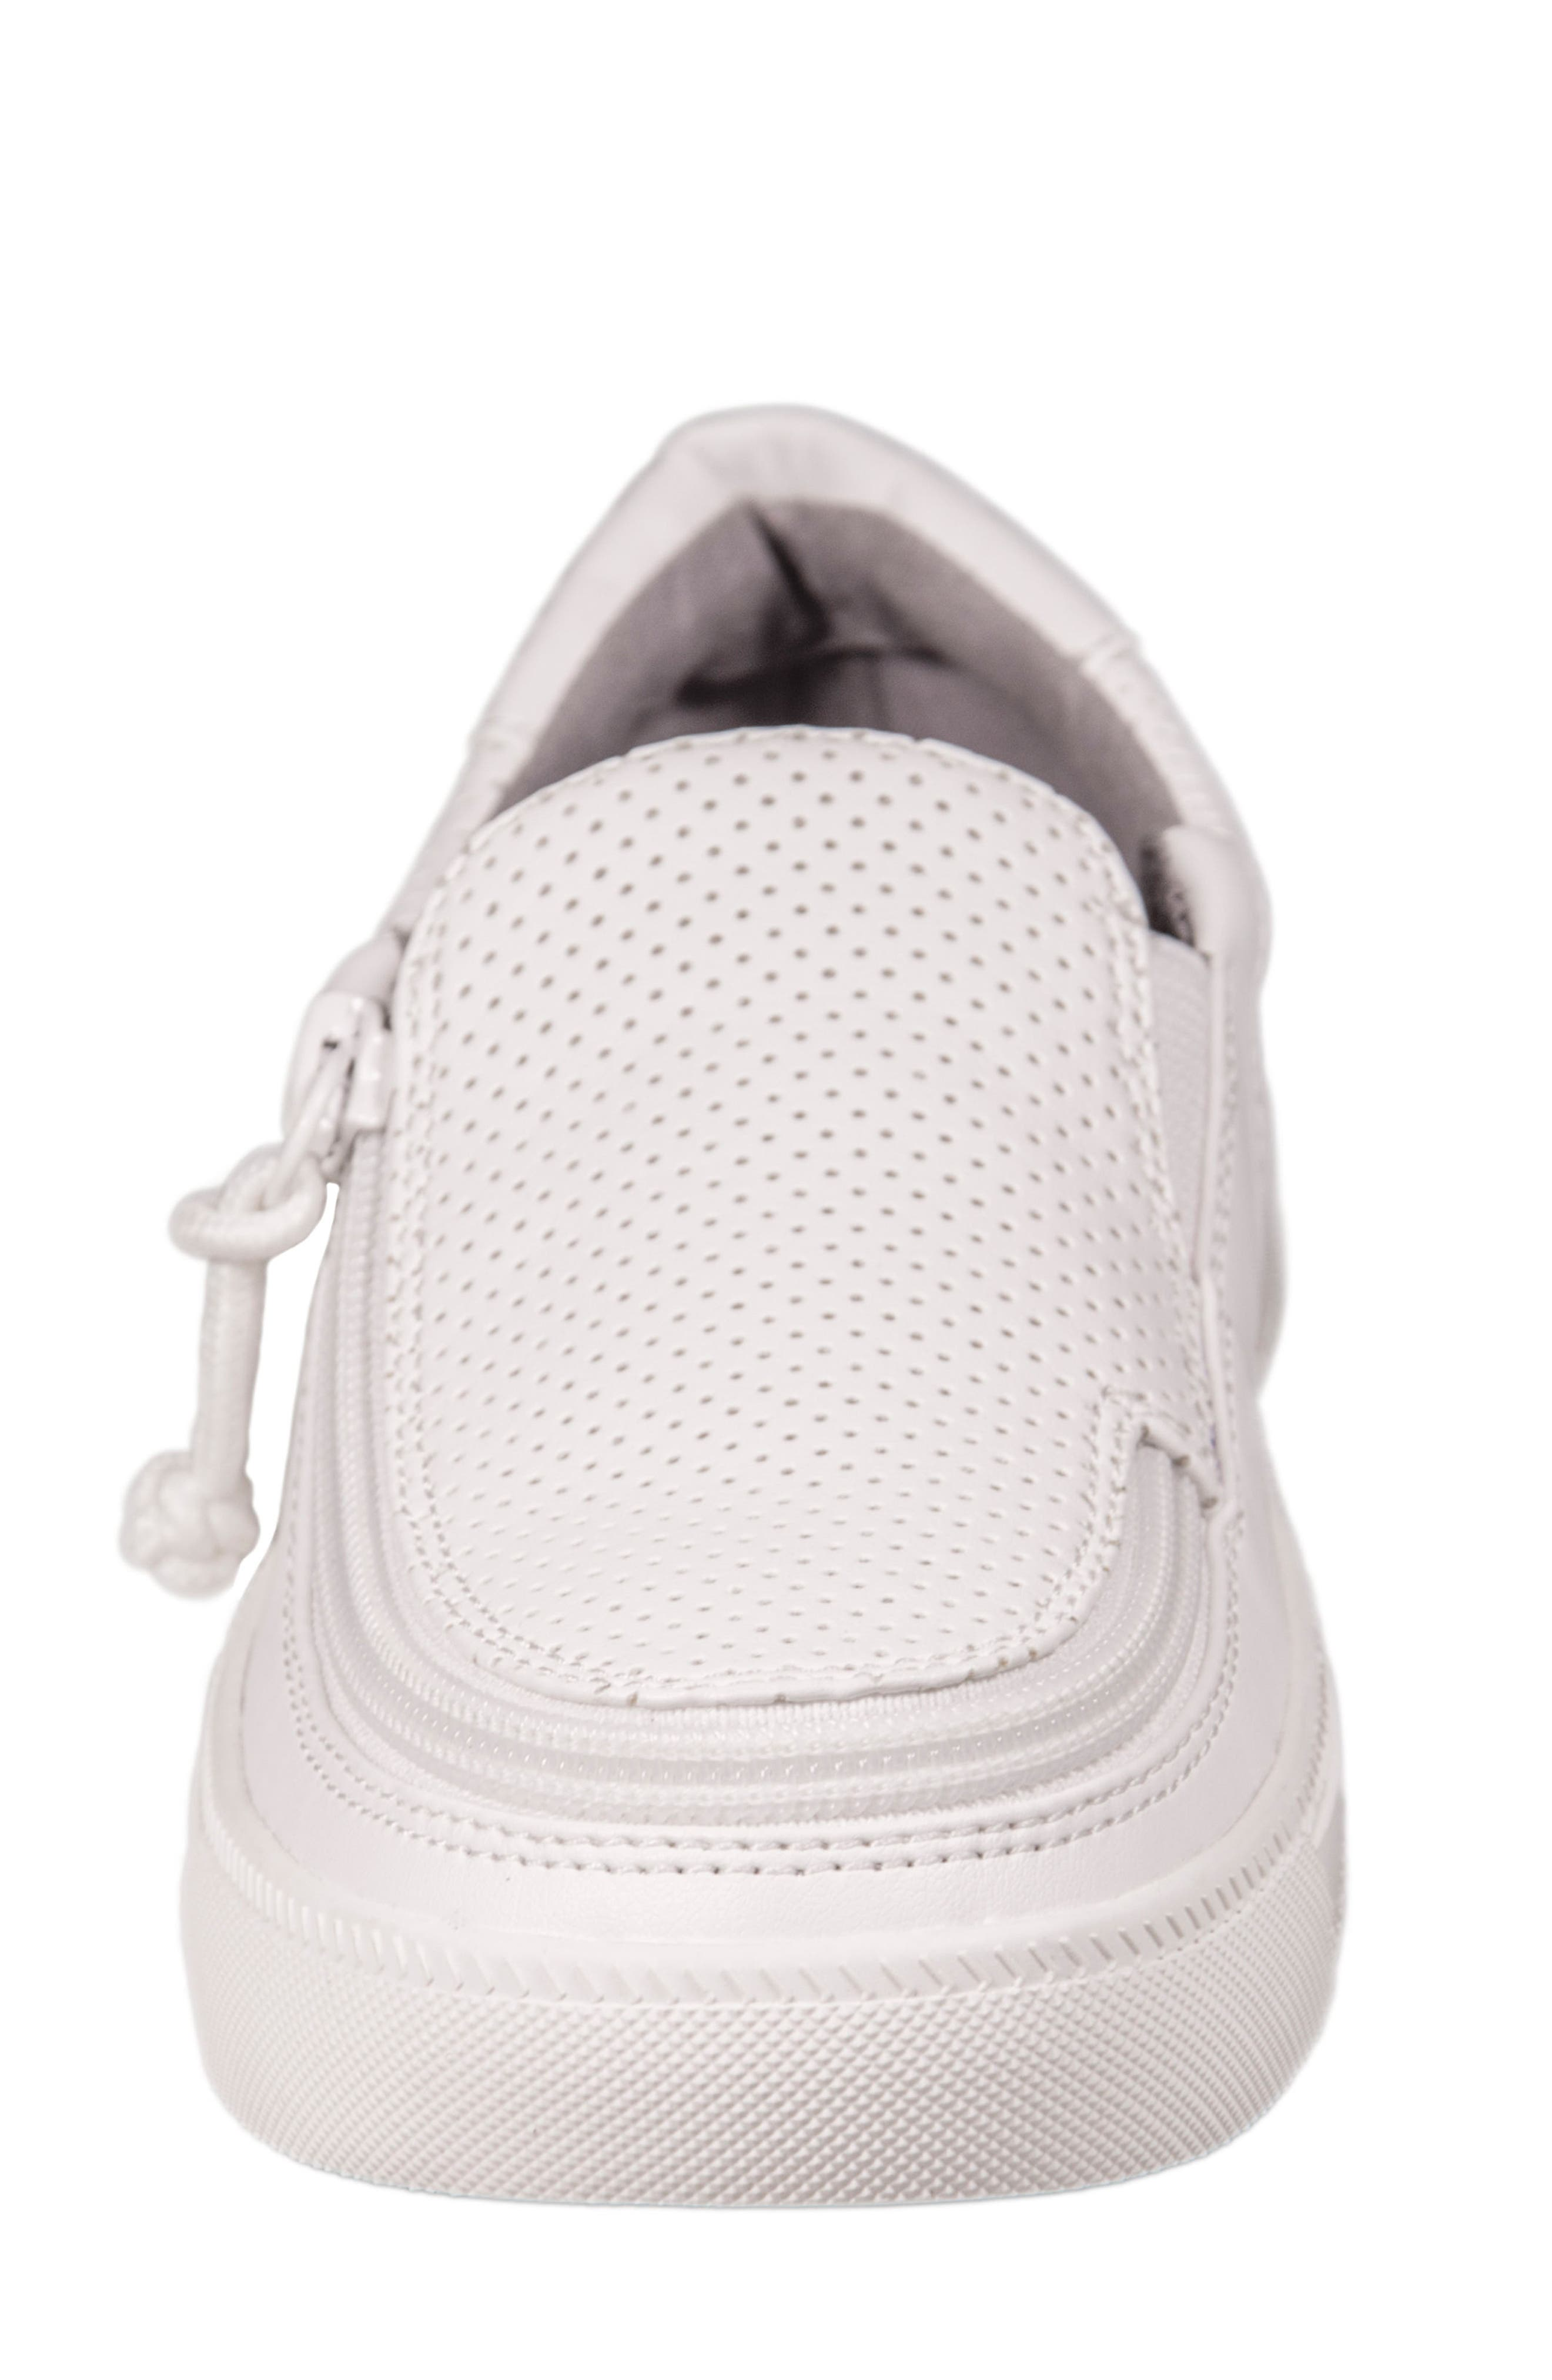 Zip Around Perforated Low Top Sneaker,                             Alternate thumbnail 3, color,                             White Perforated